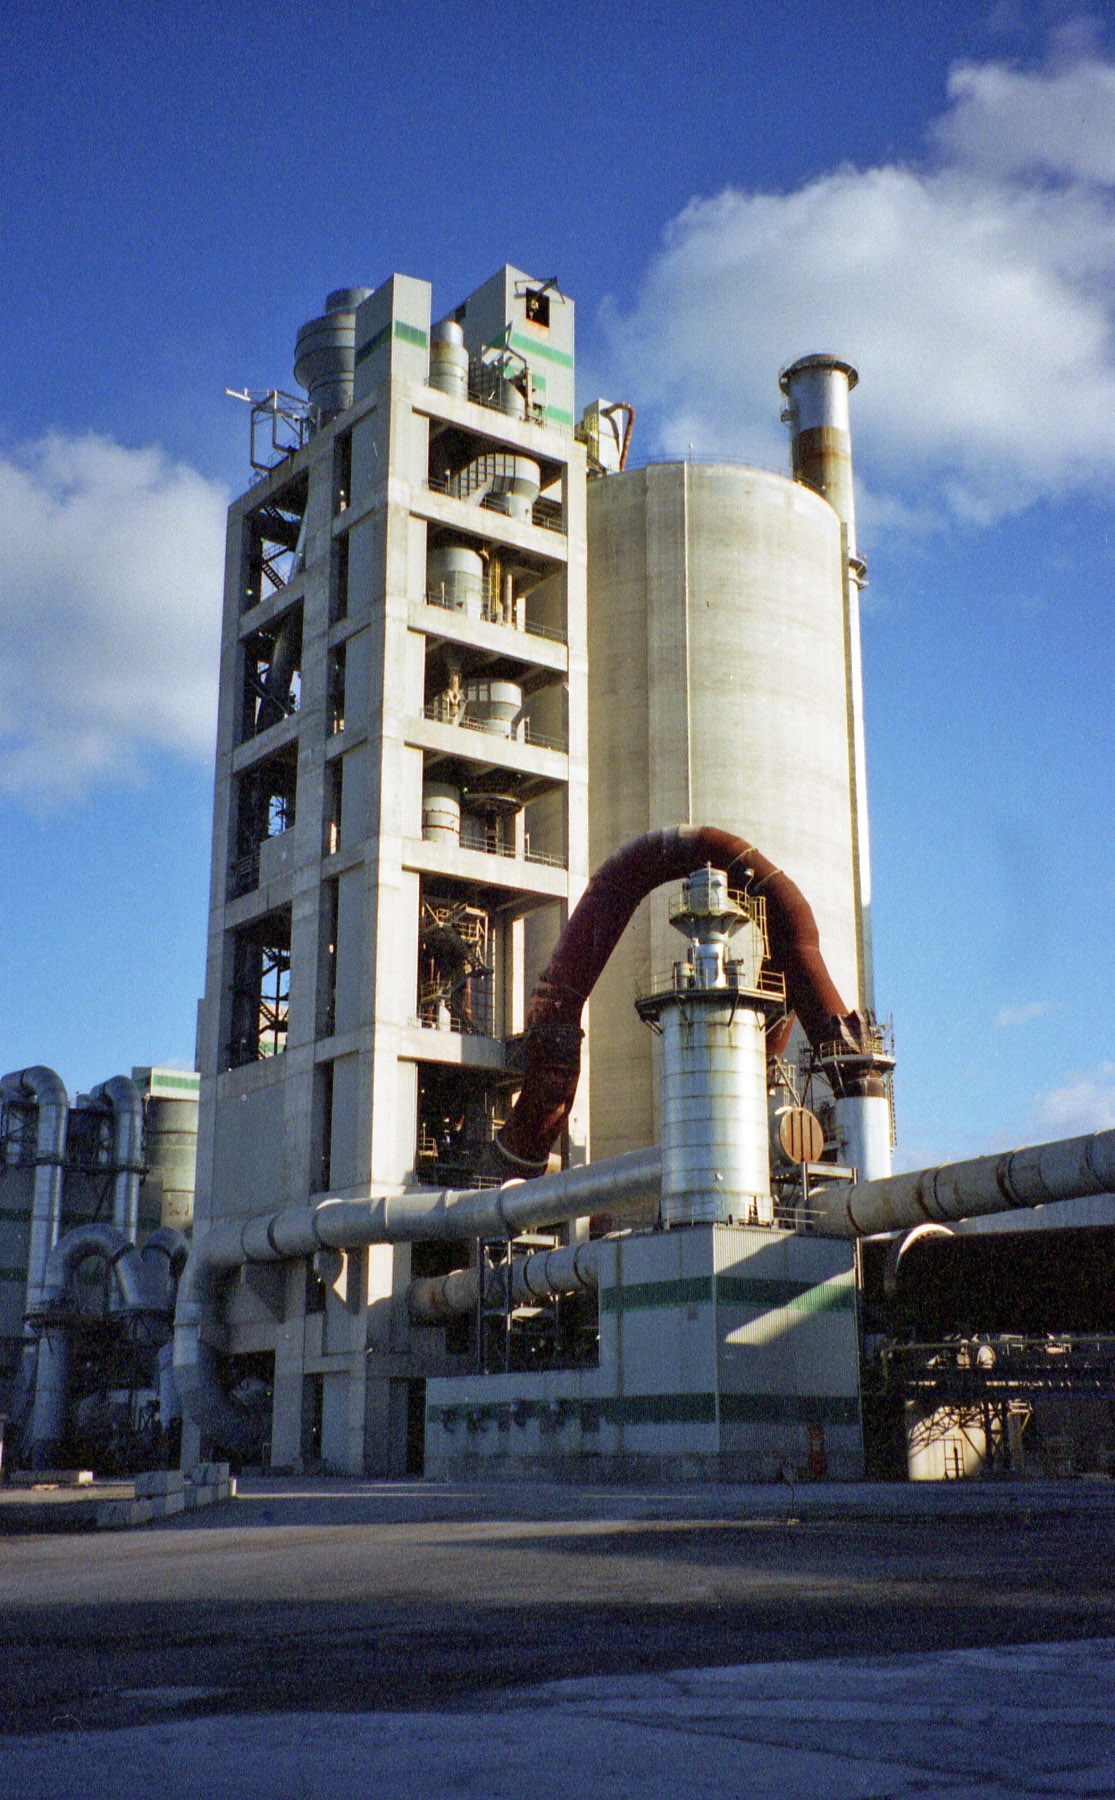 A preheater tower, rawmix silo and exhaust stack. Bottom left: rawmill. Bottom right: rotary kiln with tertiary air duct above. The U-shaped duct leading from the kiln inlet is an